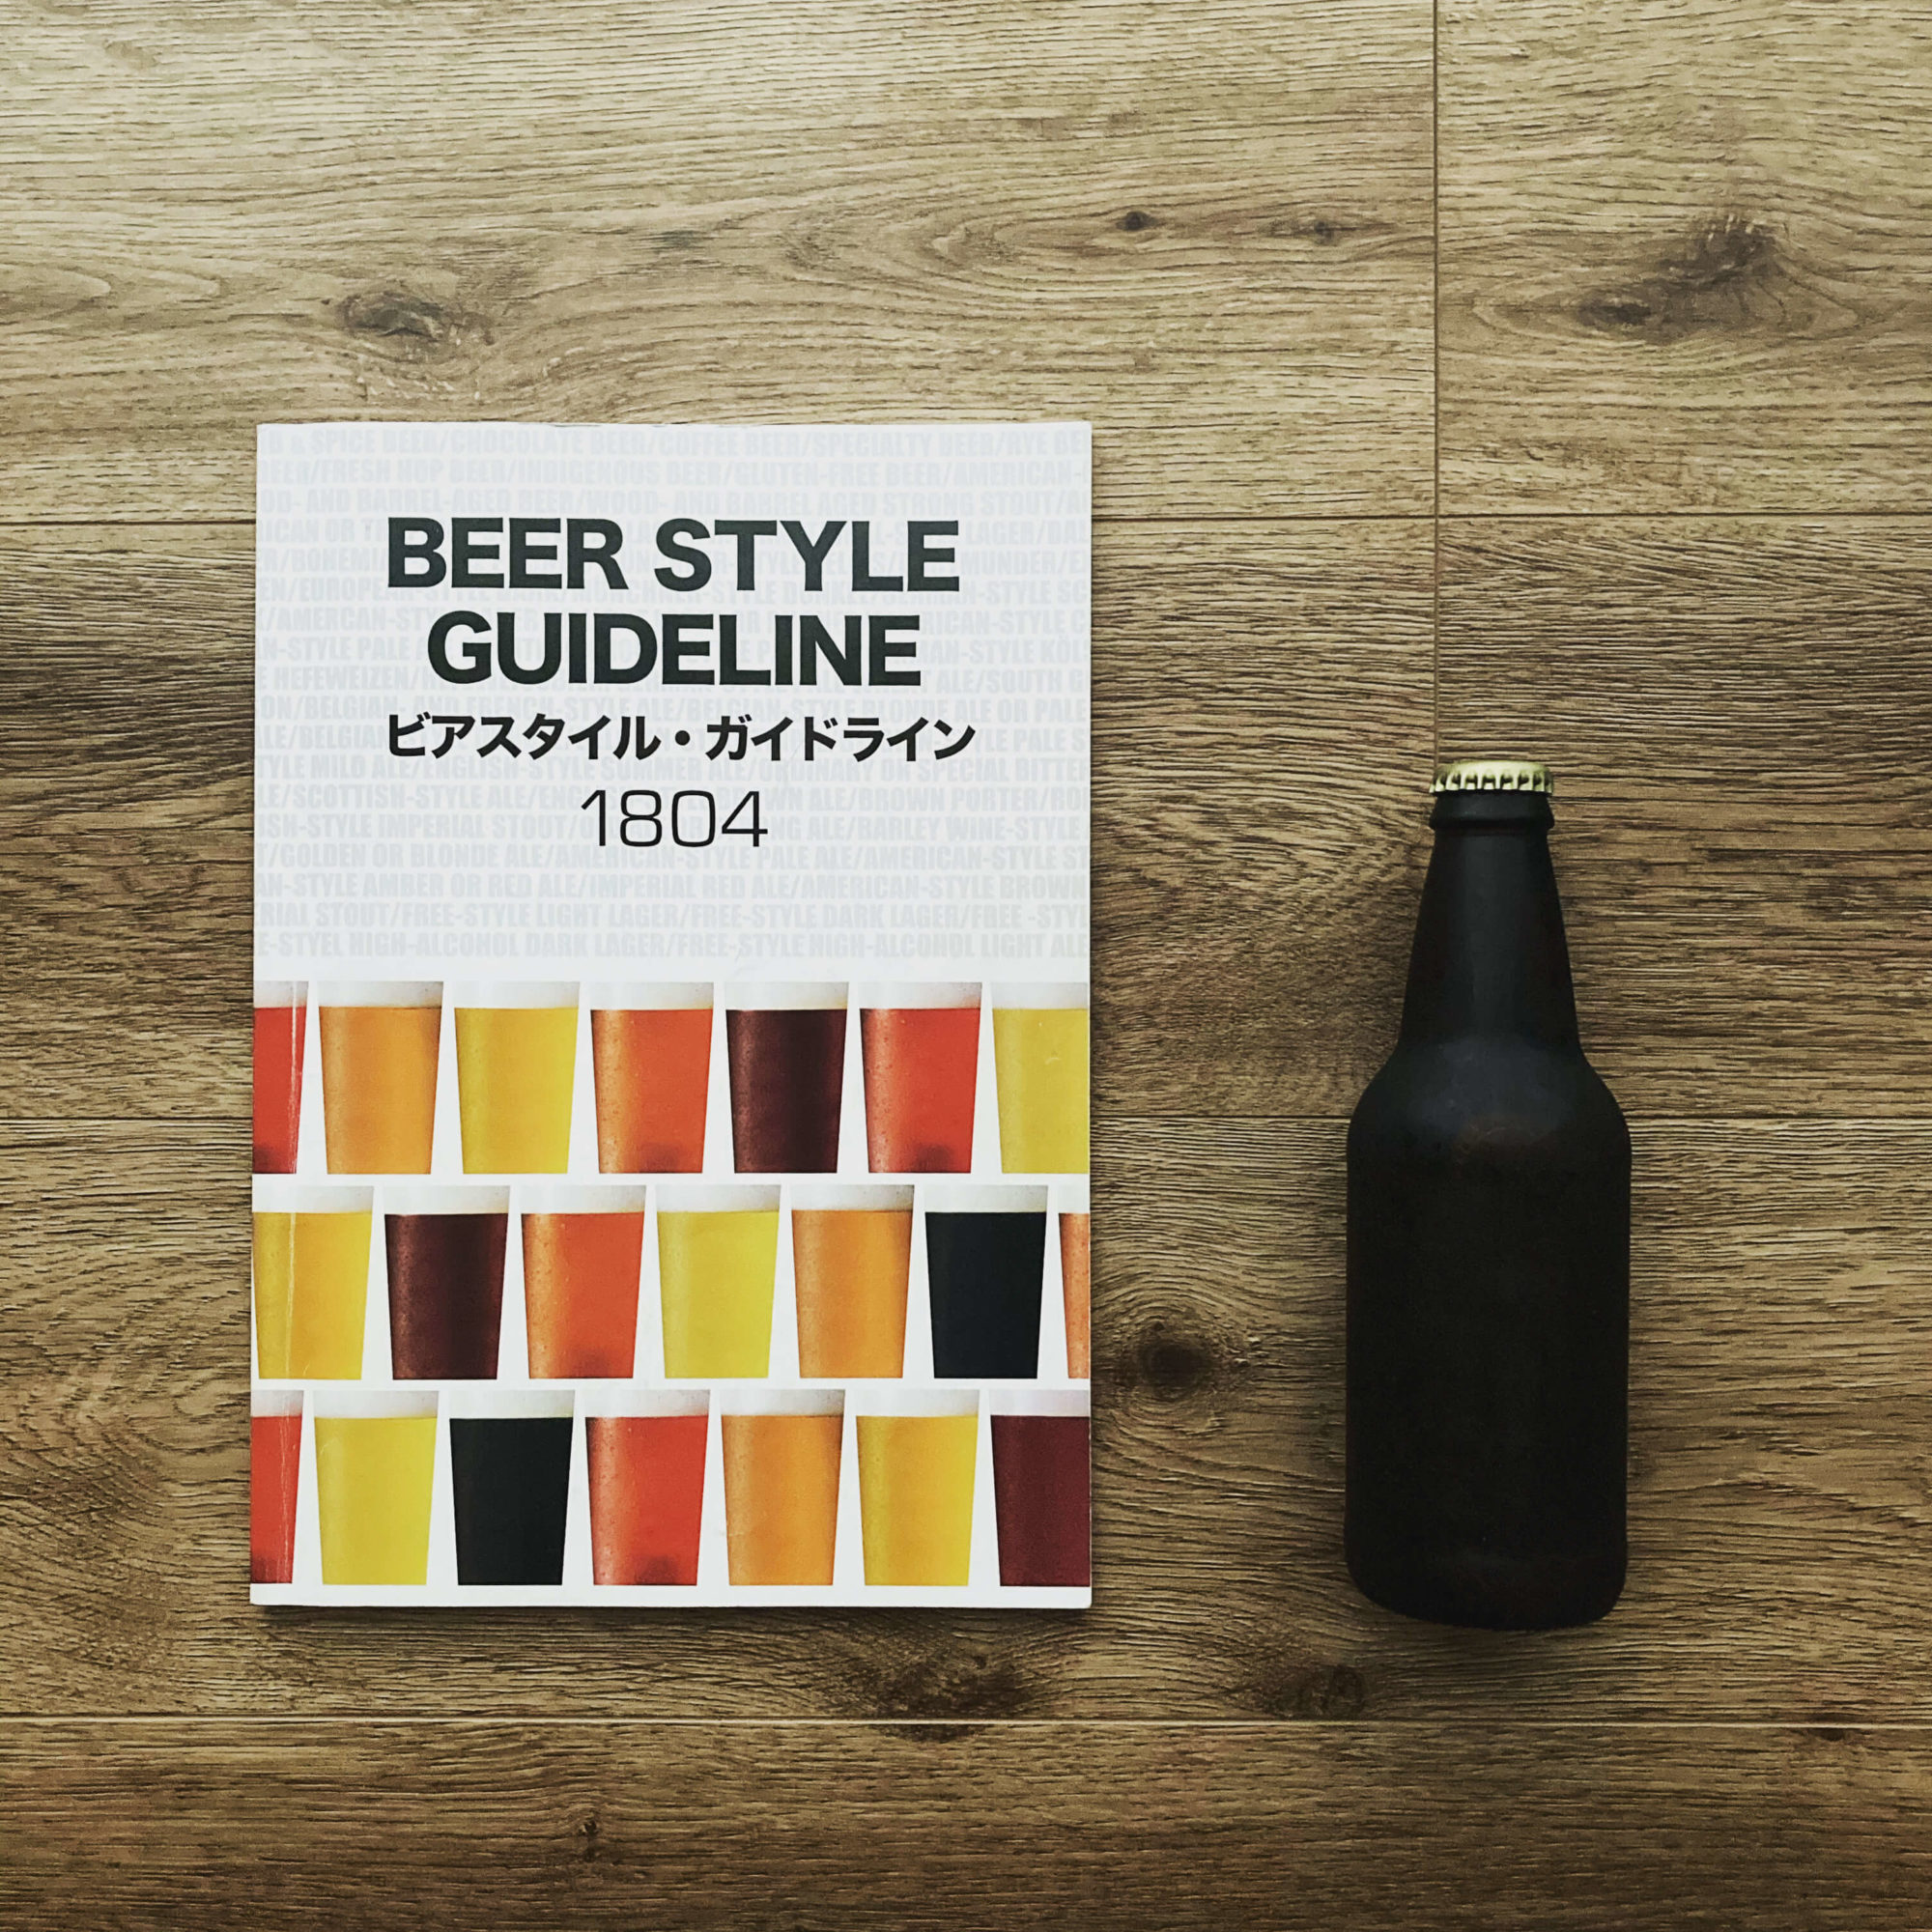 BEER STYLE GUIDELINE